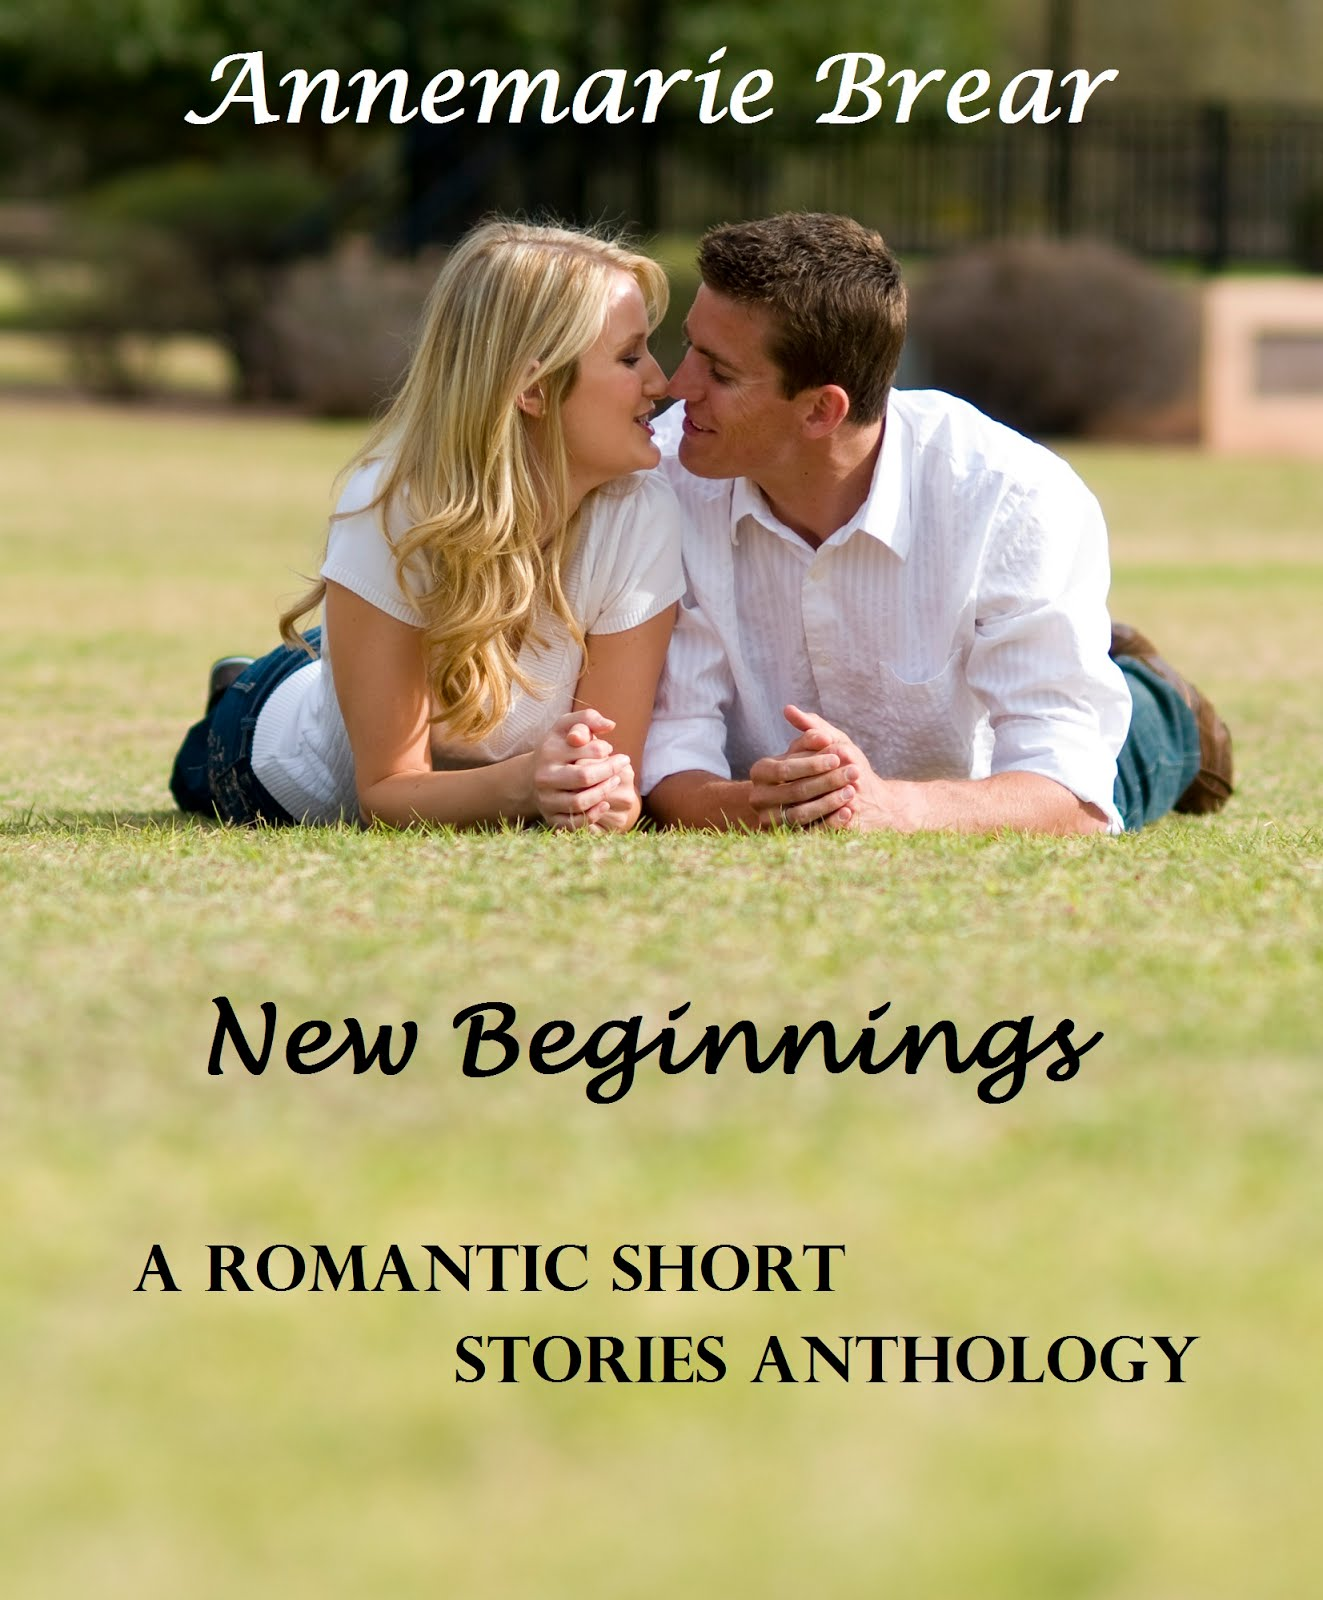 New Beginnings, an anthology